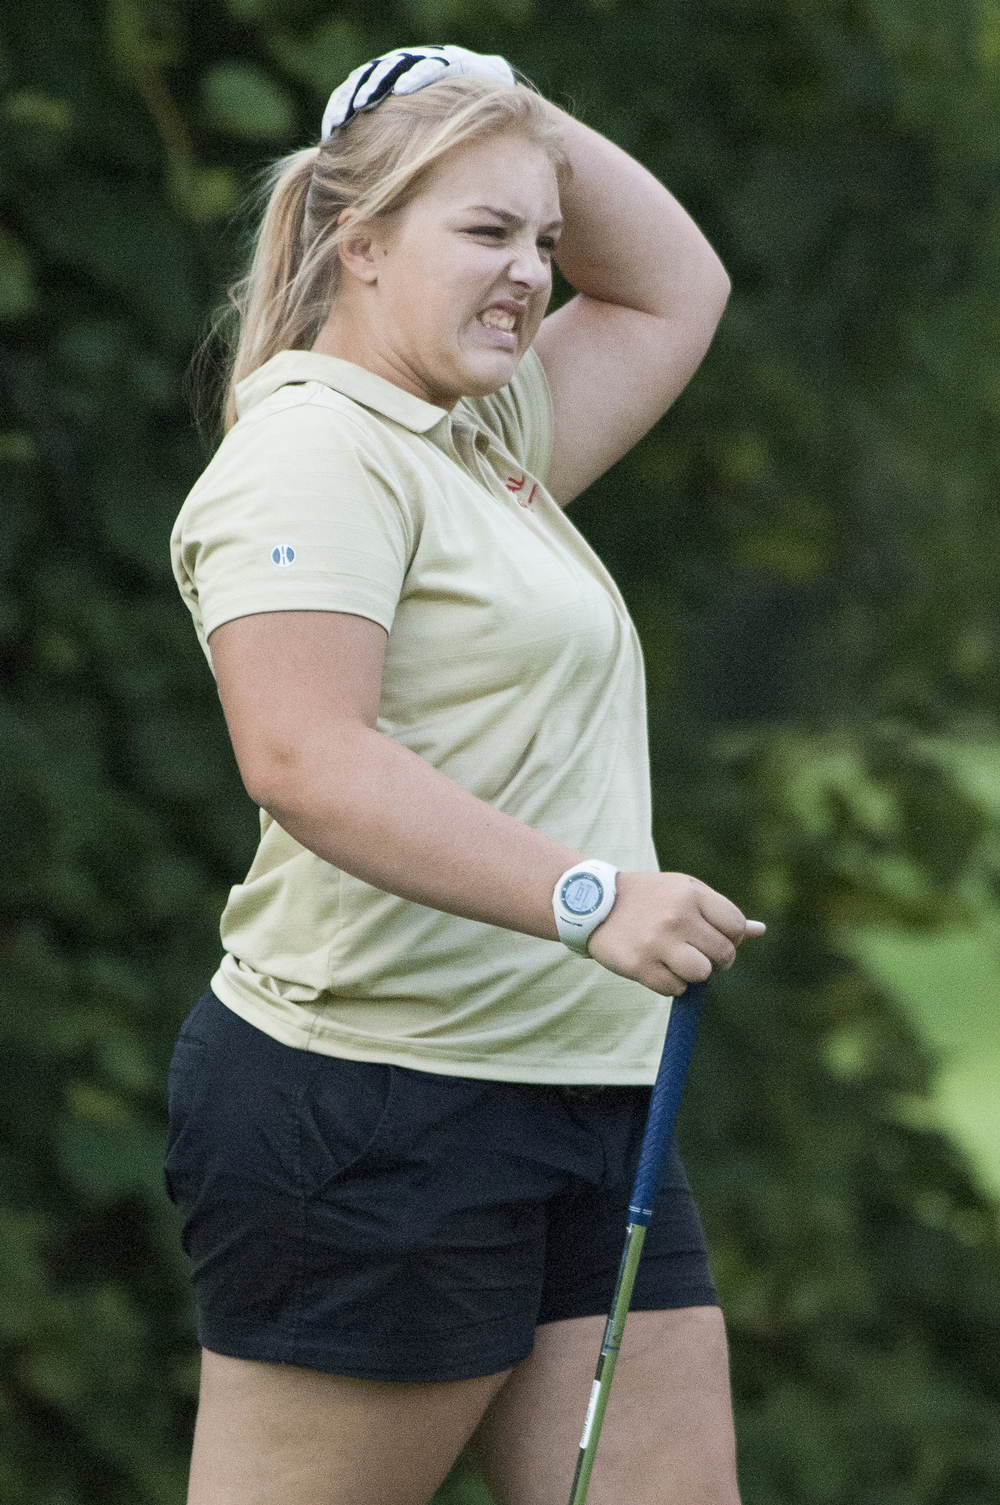 Memorial senior Jamie Brodnick reacts to a missed put on the fourth hole during a game against Central on senior day, Wednesday, Sept. 17, 2014, at Christiana Creek Country Club in Elkhart. Central beat Memorial 206-237.